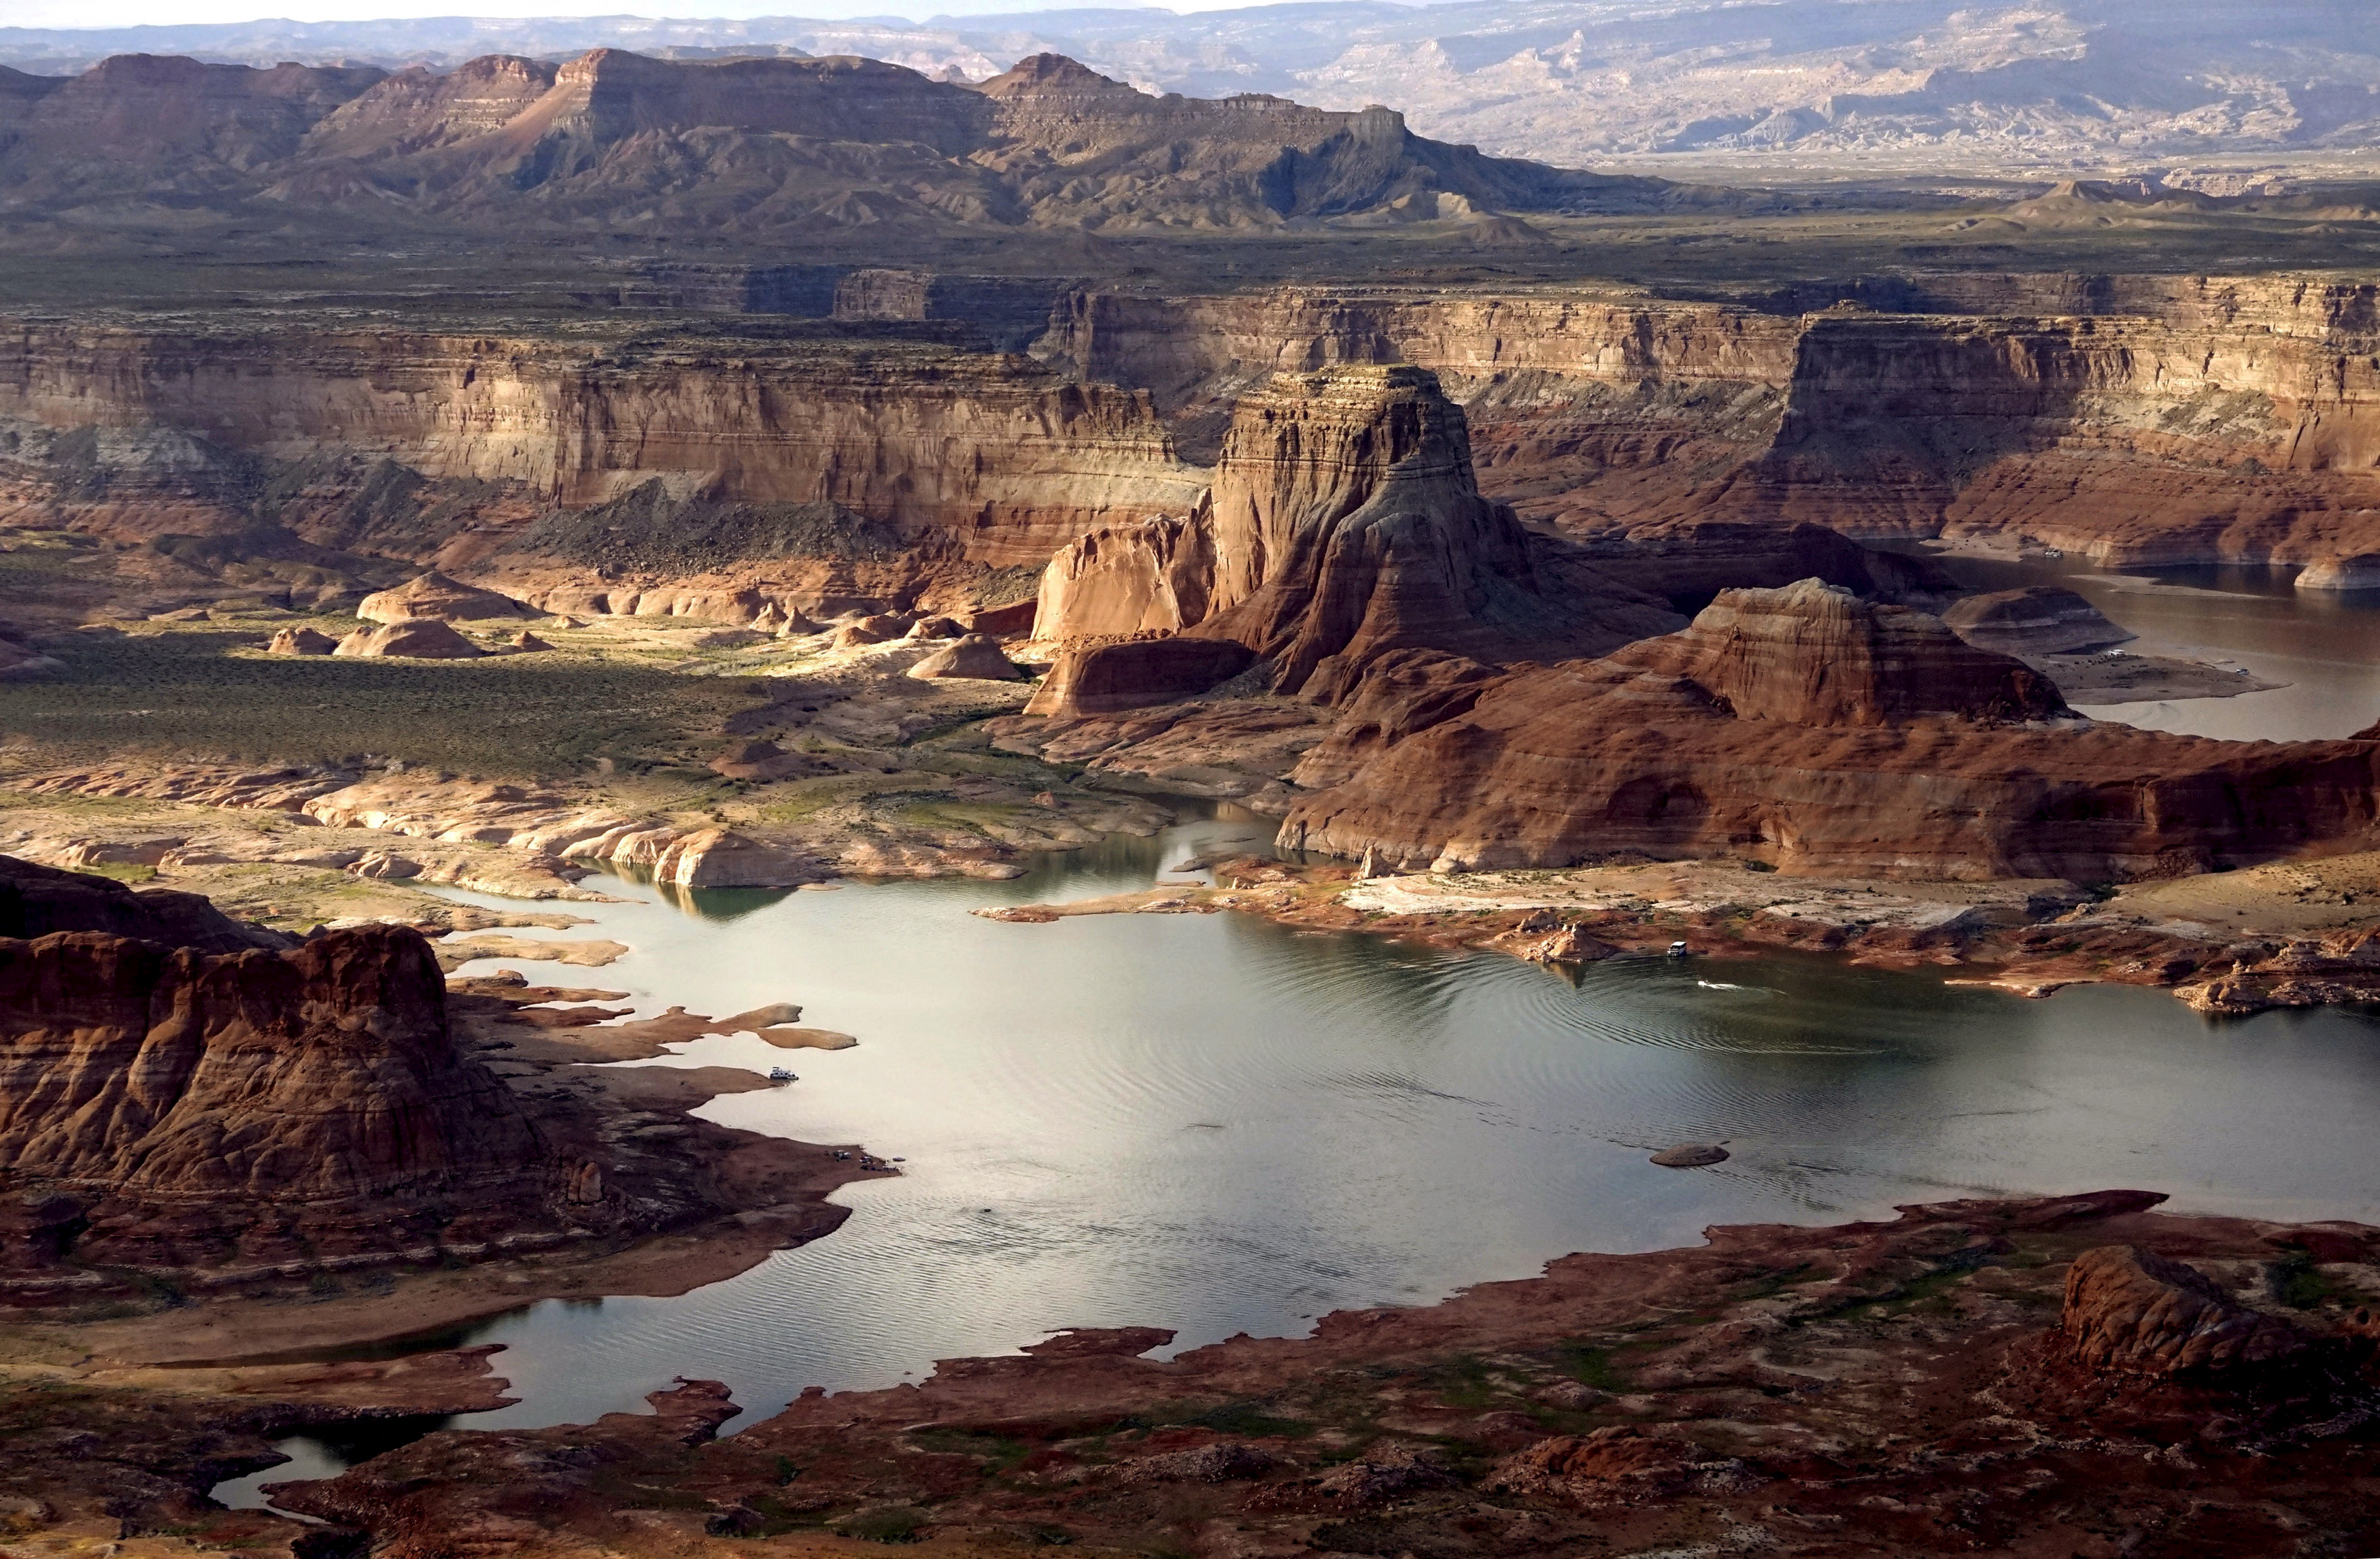 Water Crisis: The Colorado River Is Drying Up, And The ...